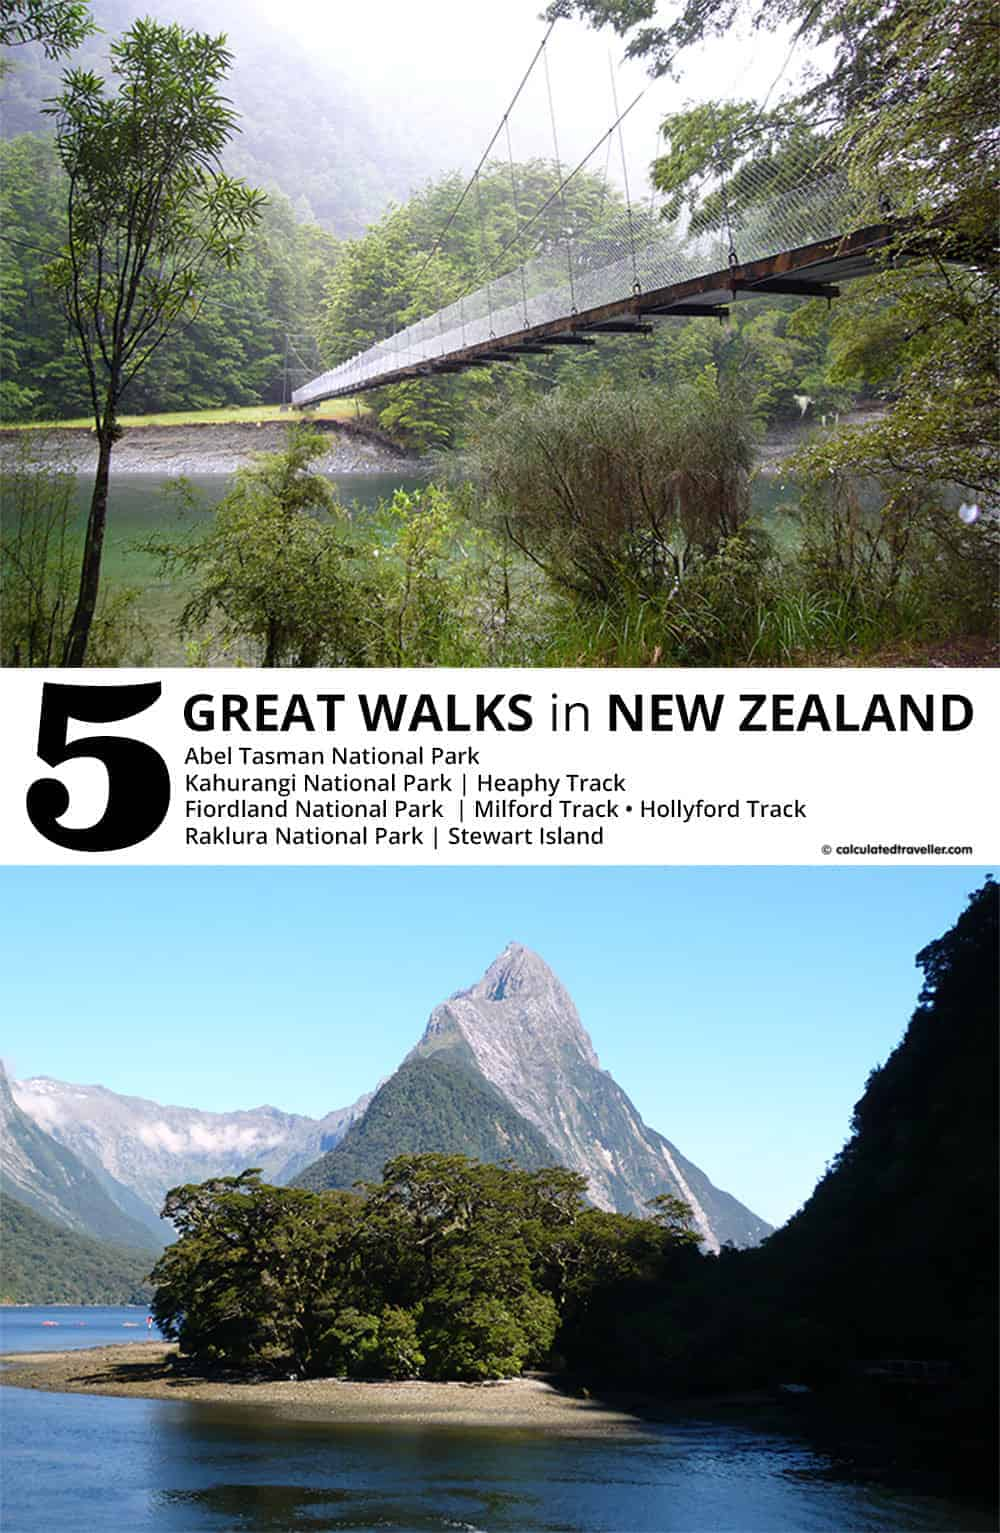 5 Great Walks in New Zealand to Enjoy | Calculated Traveller | #NewZealand #hiking #outdoor #tips #HowTo